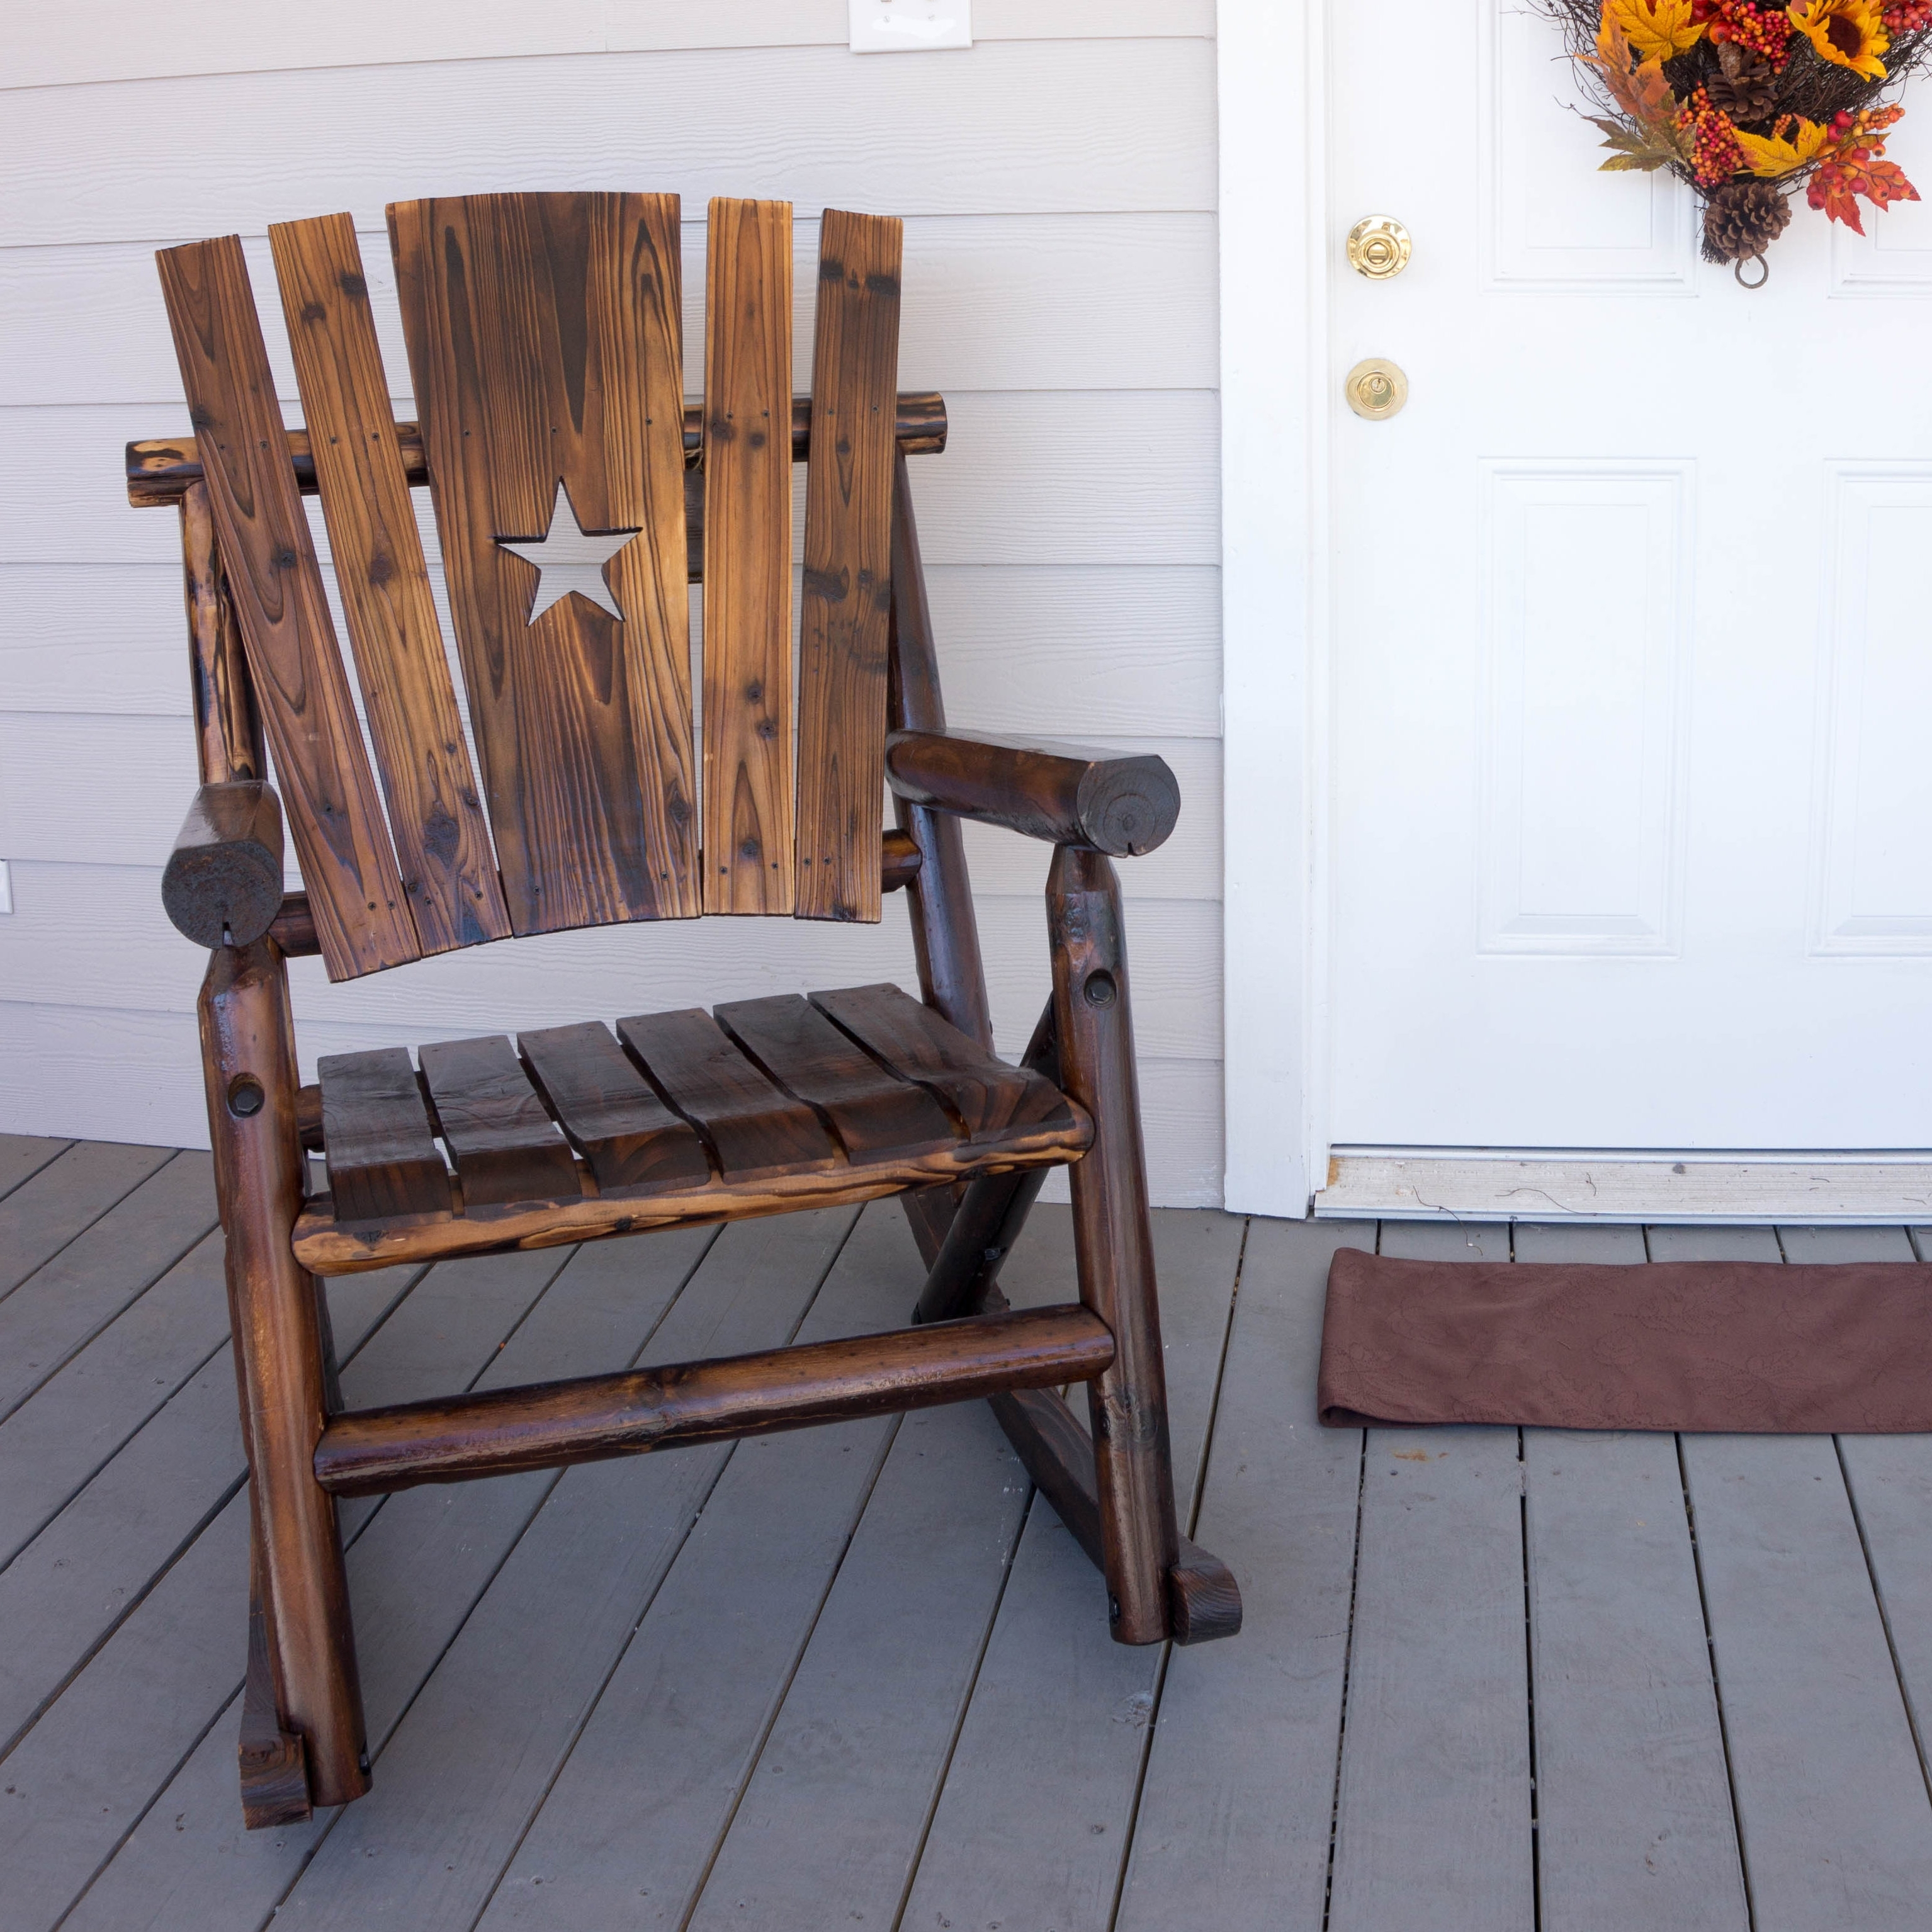 Wayfair Intended For Newest Char Log Patio Rocking Chairs With Star (View 9 of 20)